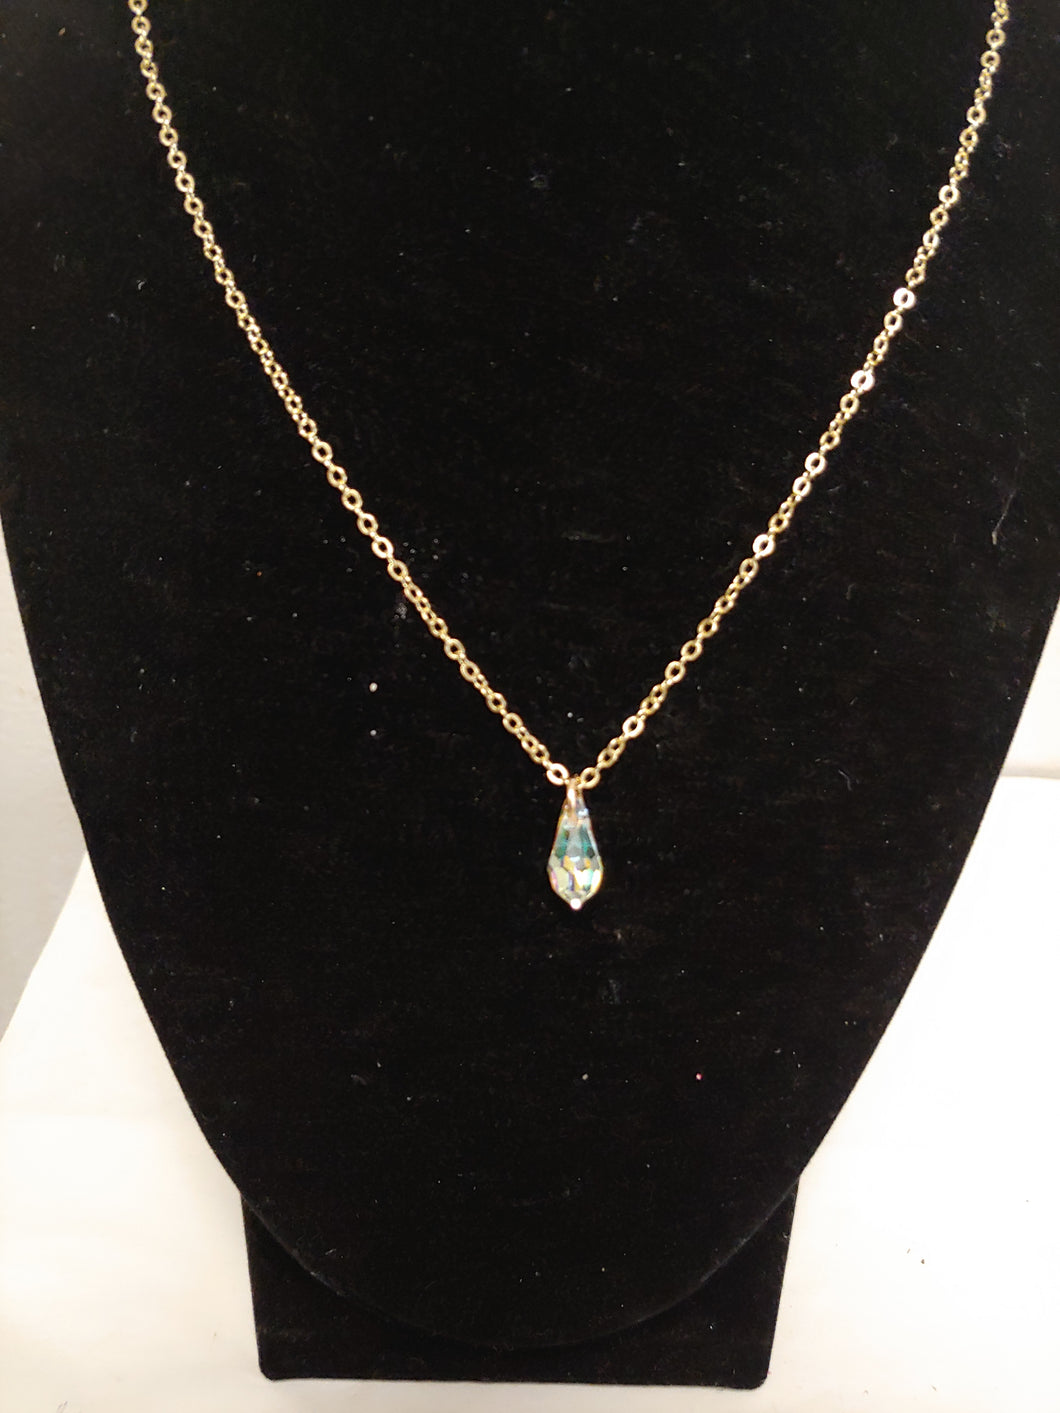 Transparent Crystal Teardrop Necklace